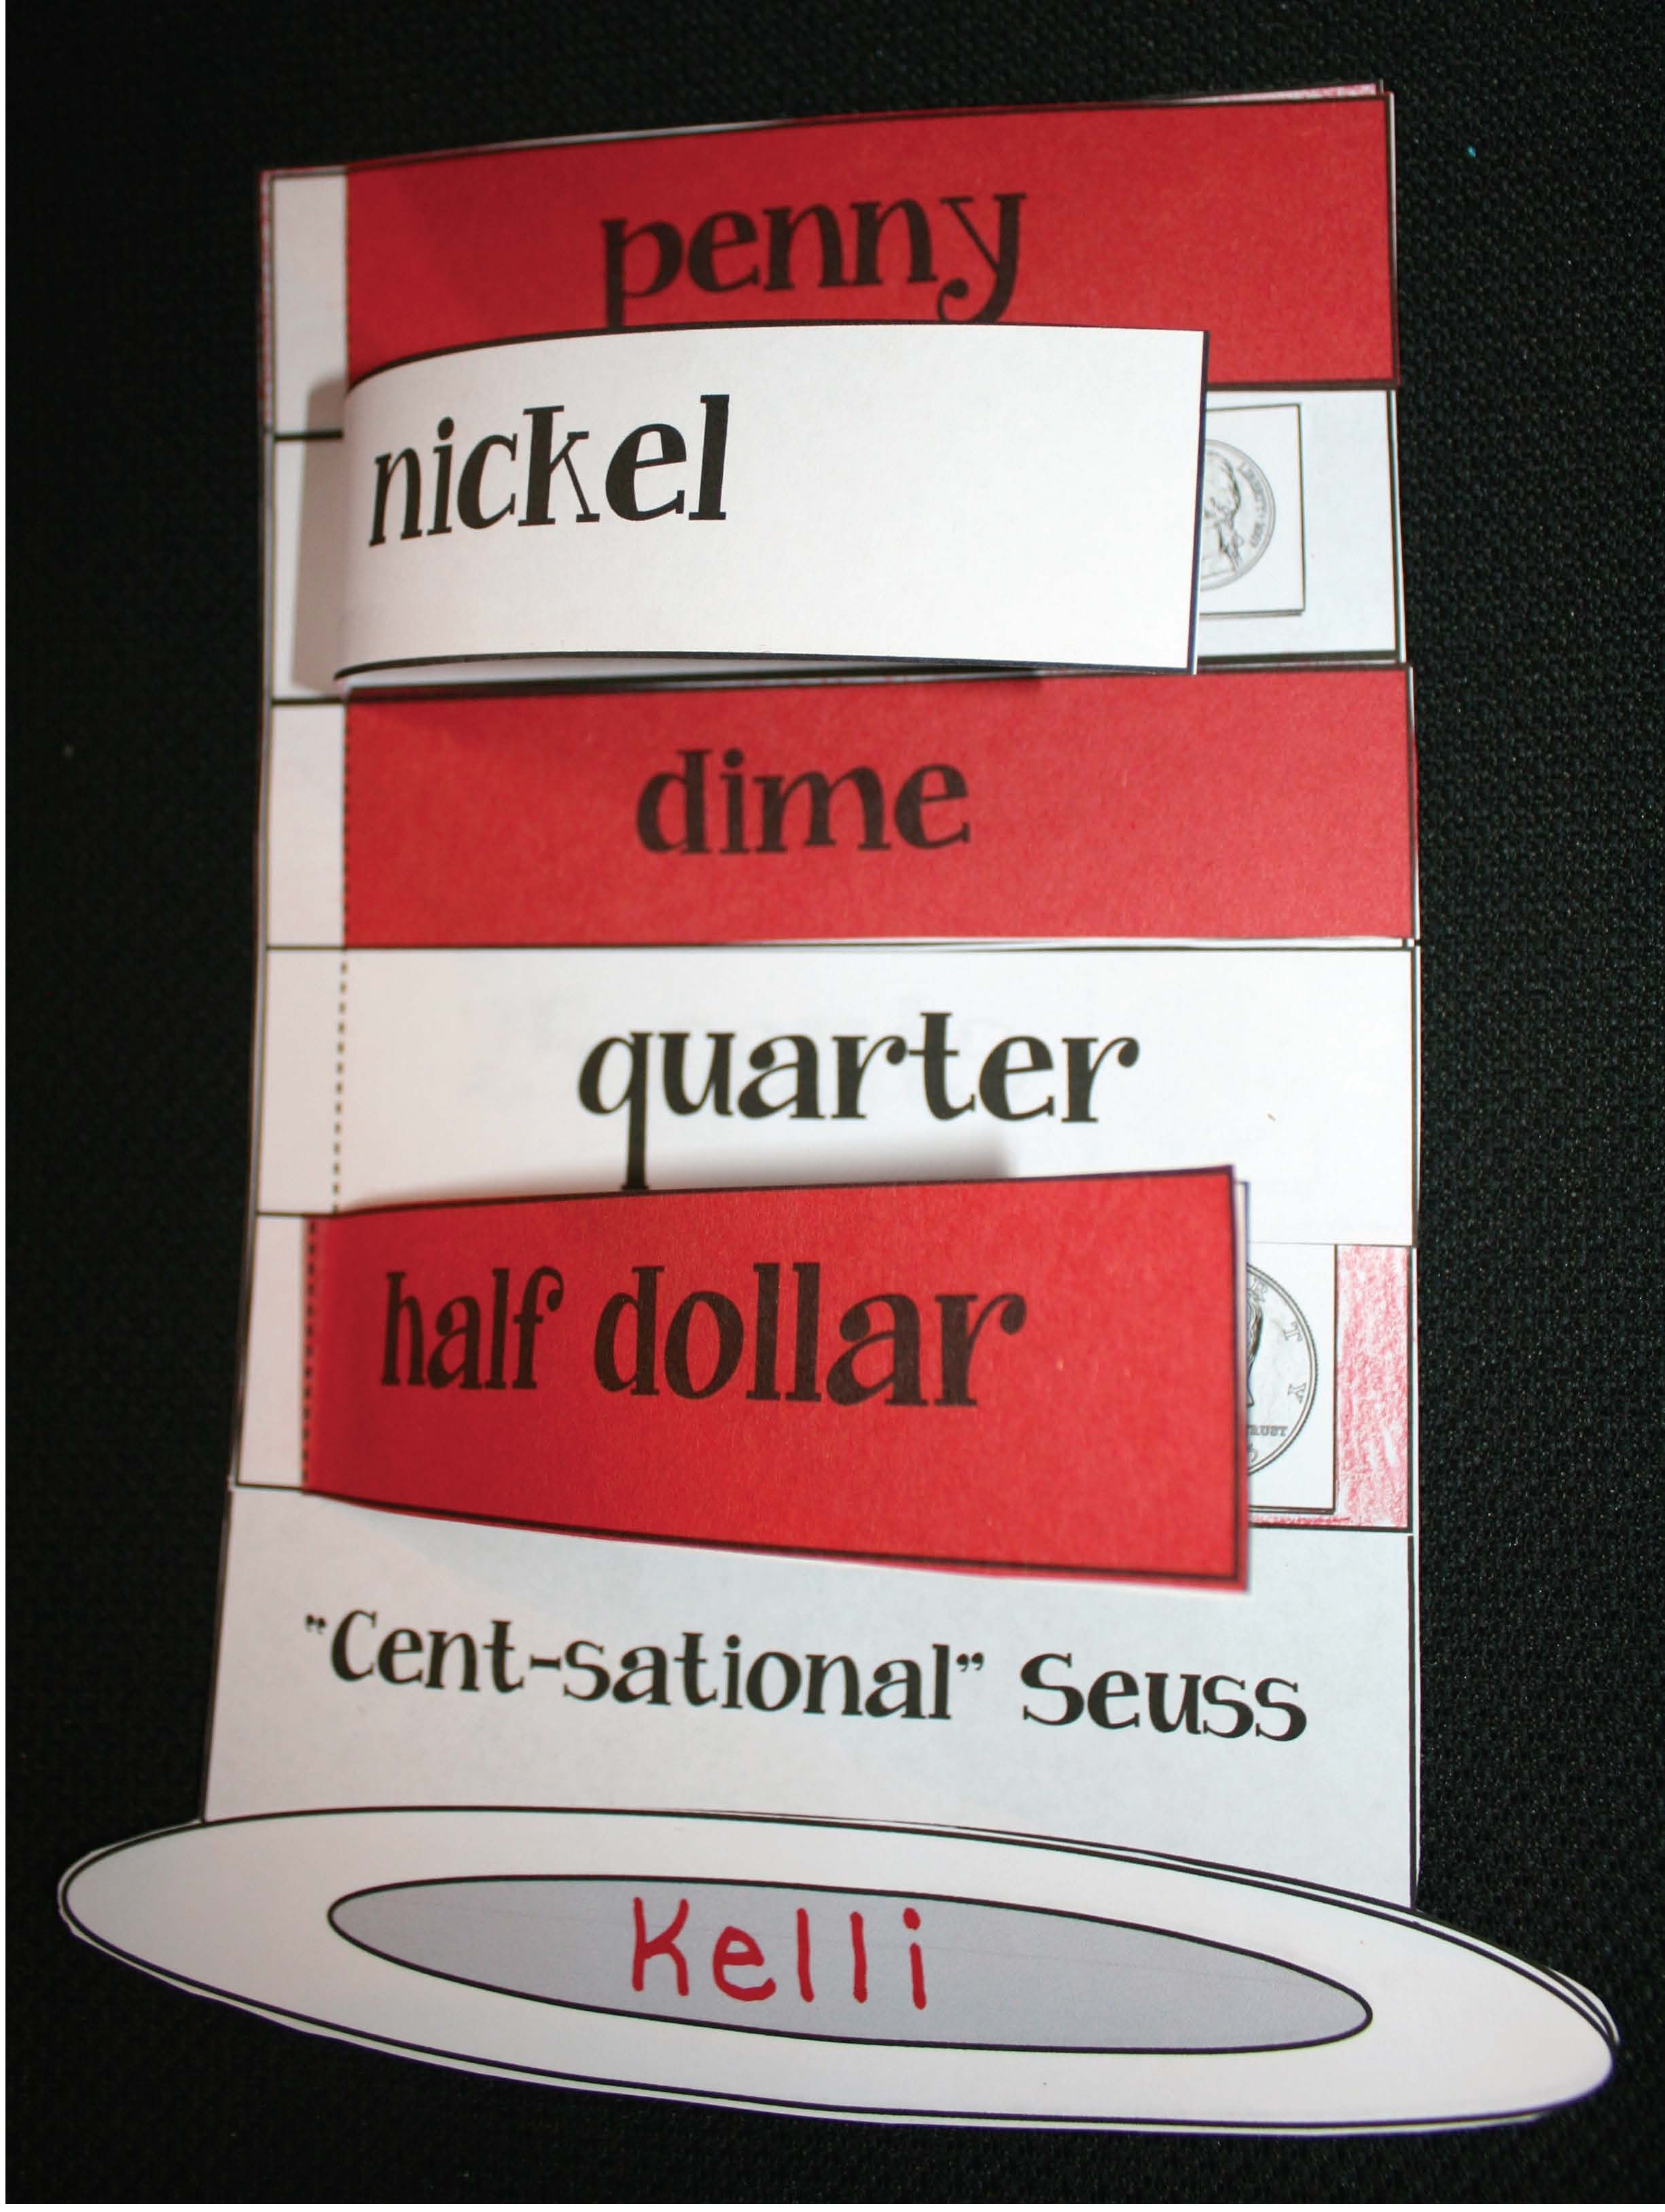 seuss activities, dr seuss activities, dr seuss lessons, cat in the hat activities, seuss hat, coin activities, coin lessons, penny nickel dime quarter lessons, coin identification, march bulletin boards, spring bulletin boards, seuss bulleting boards, money bulletin boards, lessons on money, hat flip book, cat in the hat flip books,